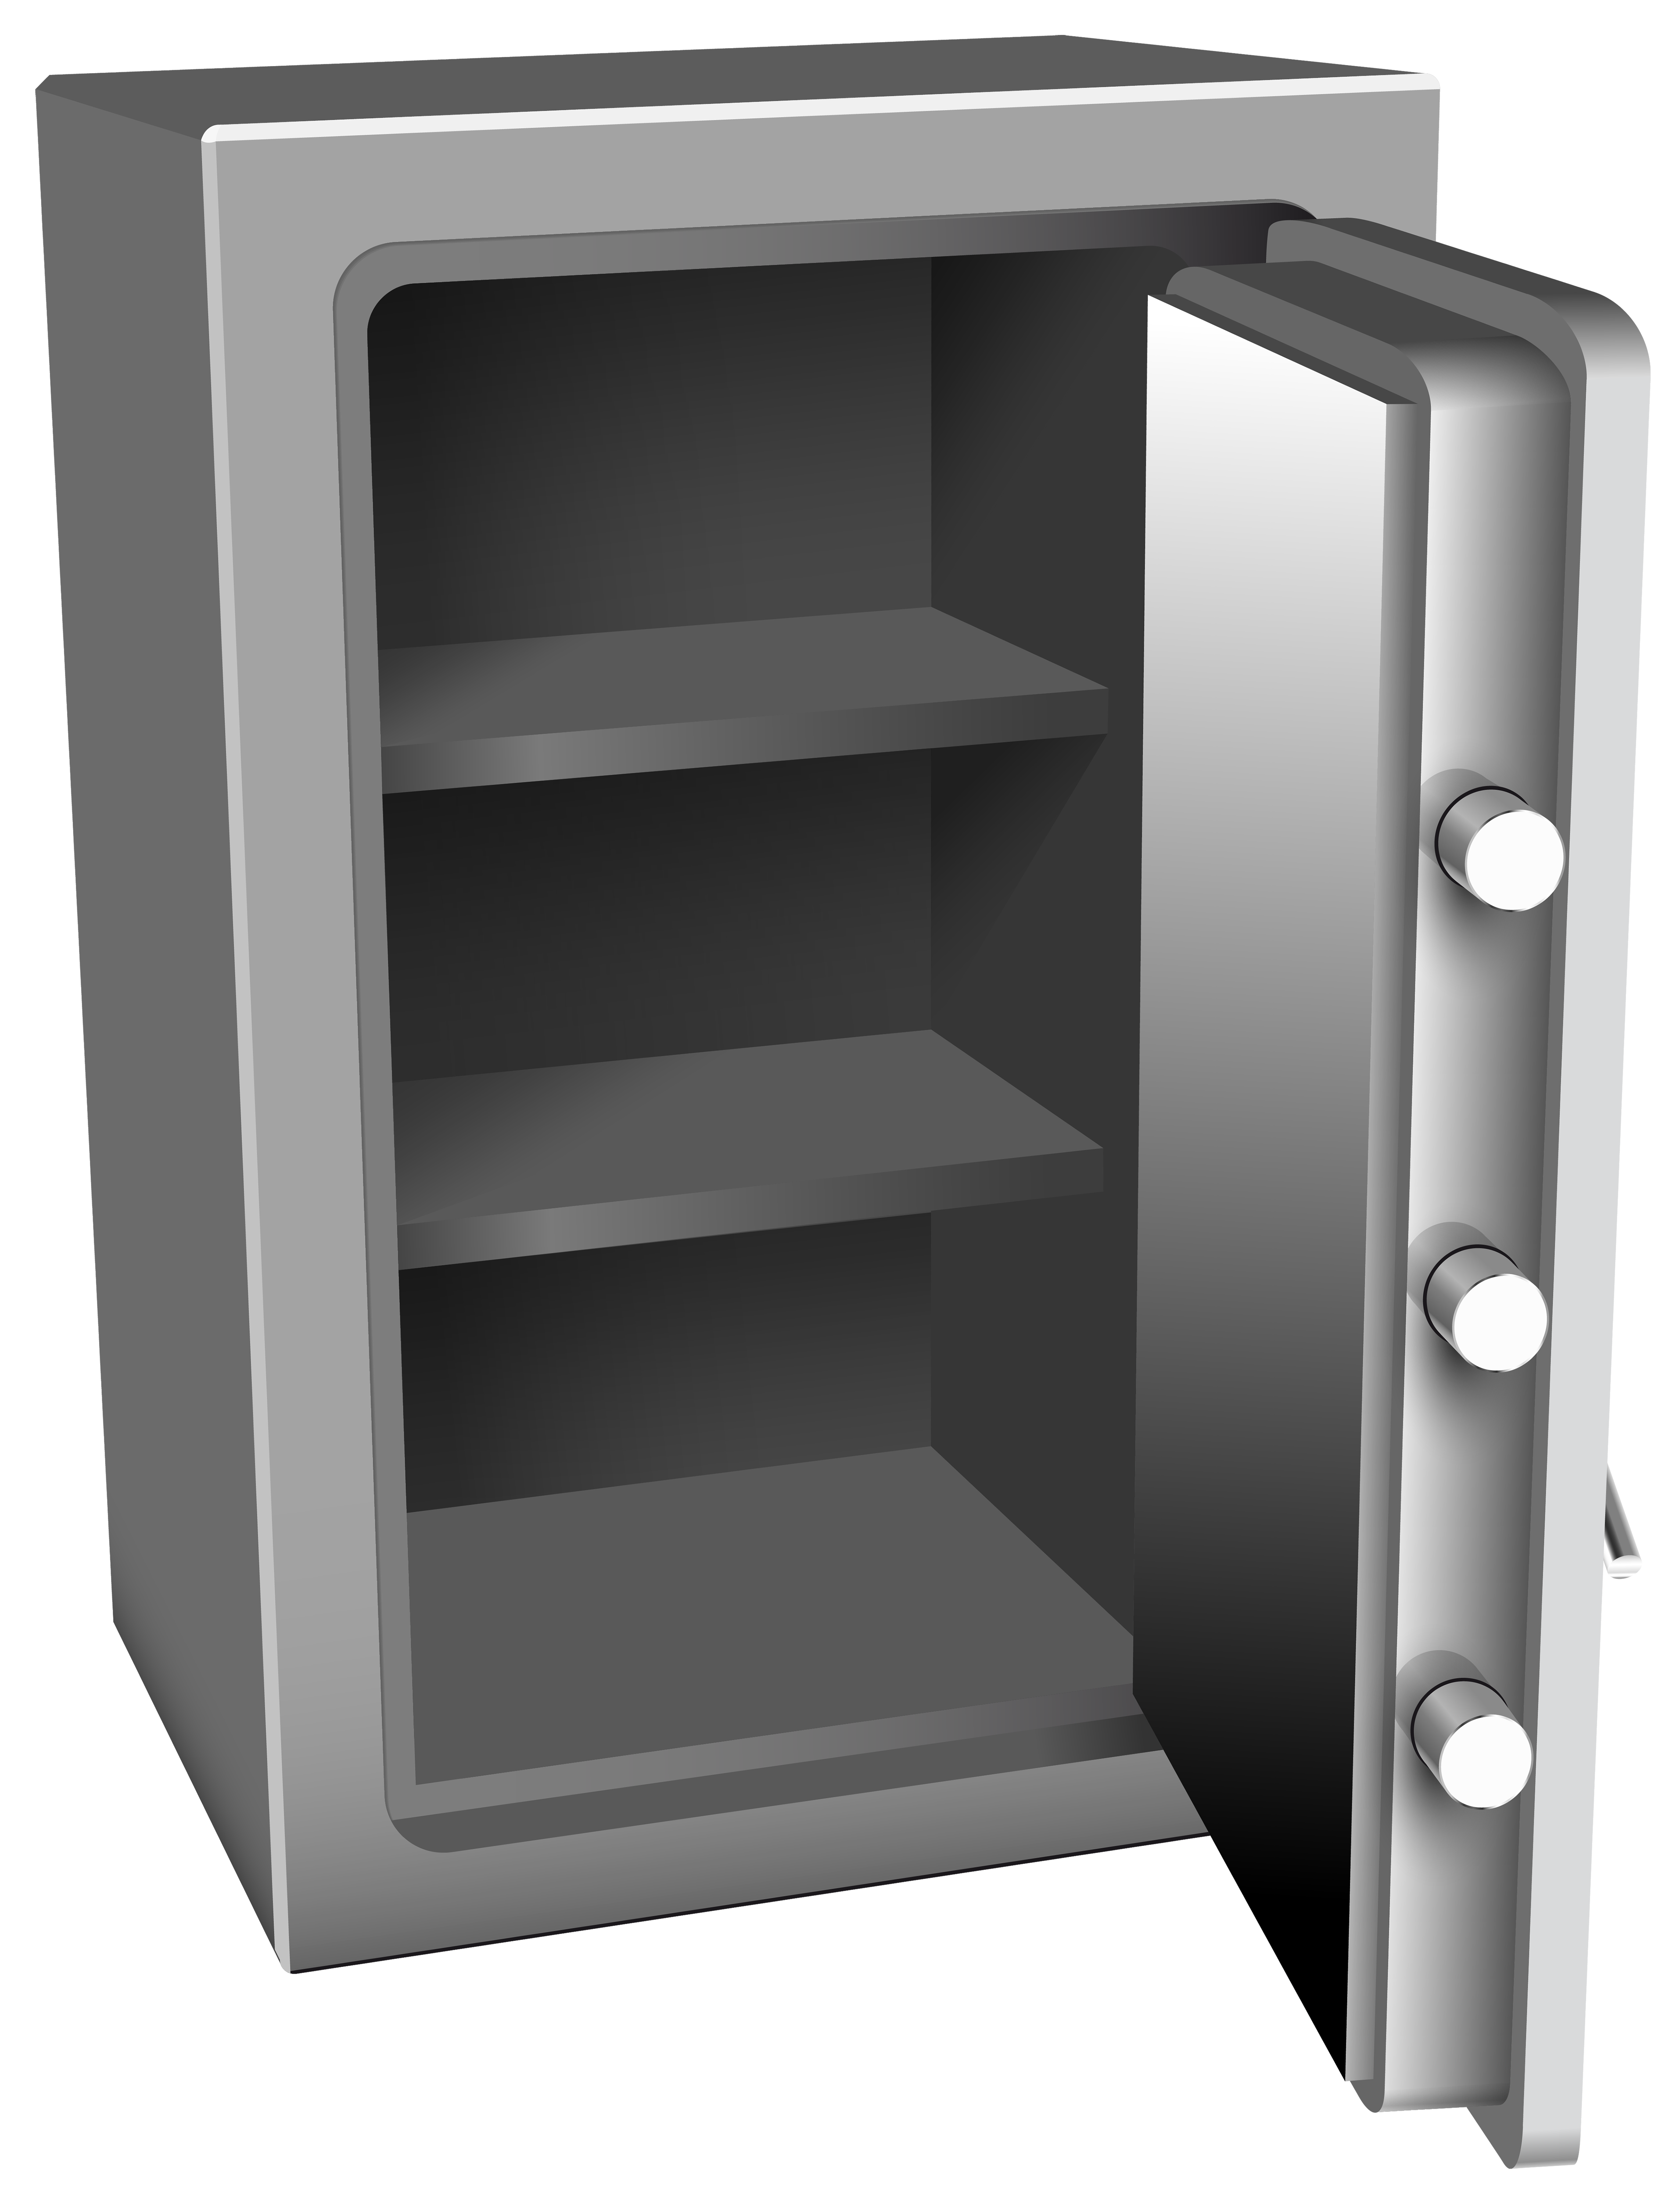 Working clipart safely. Open silver safe png